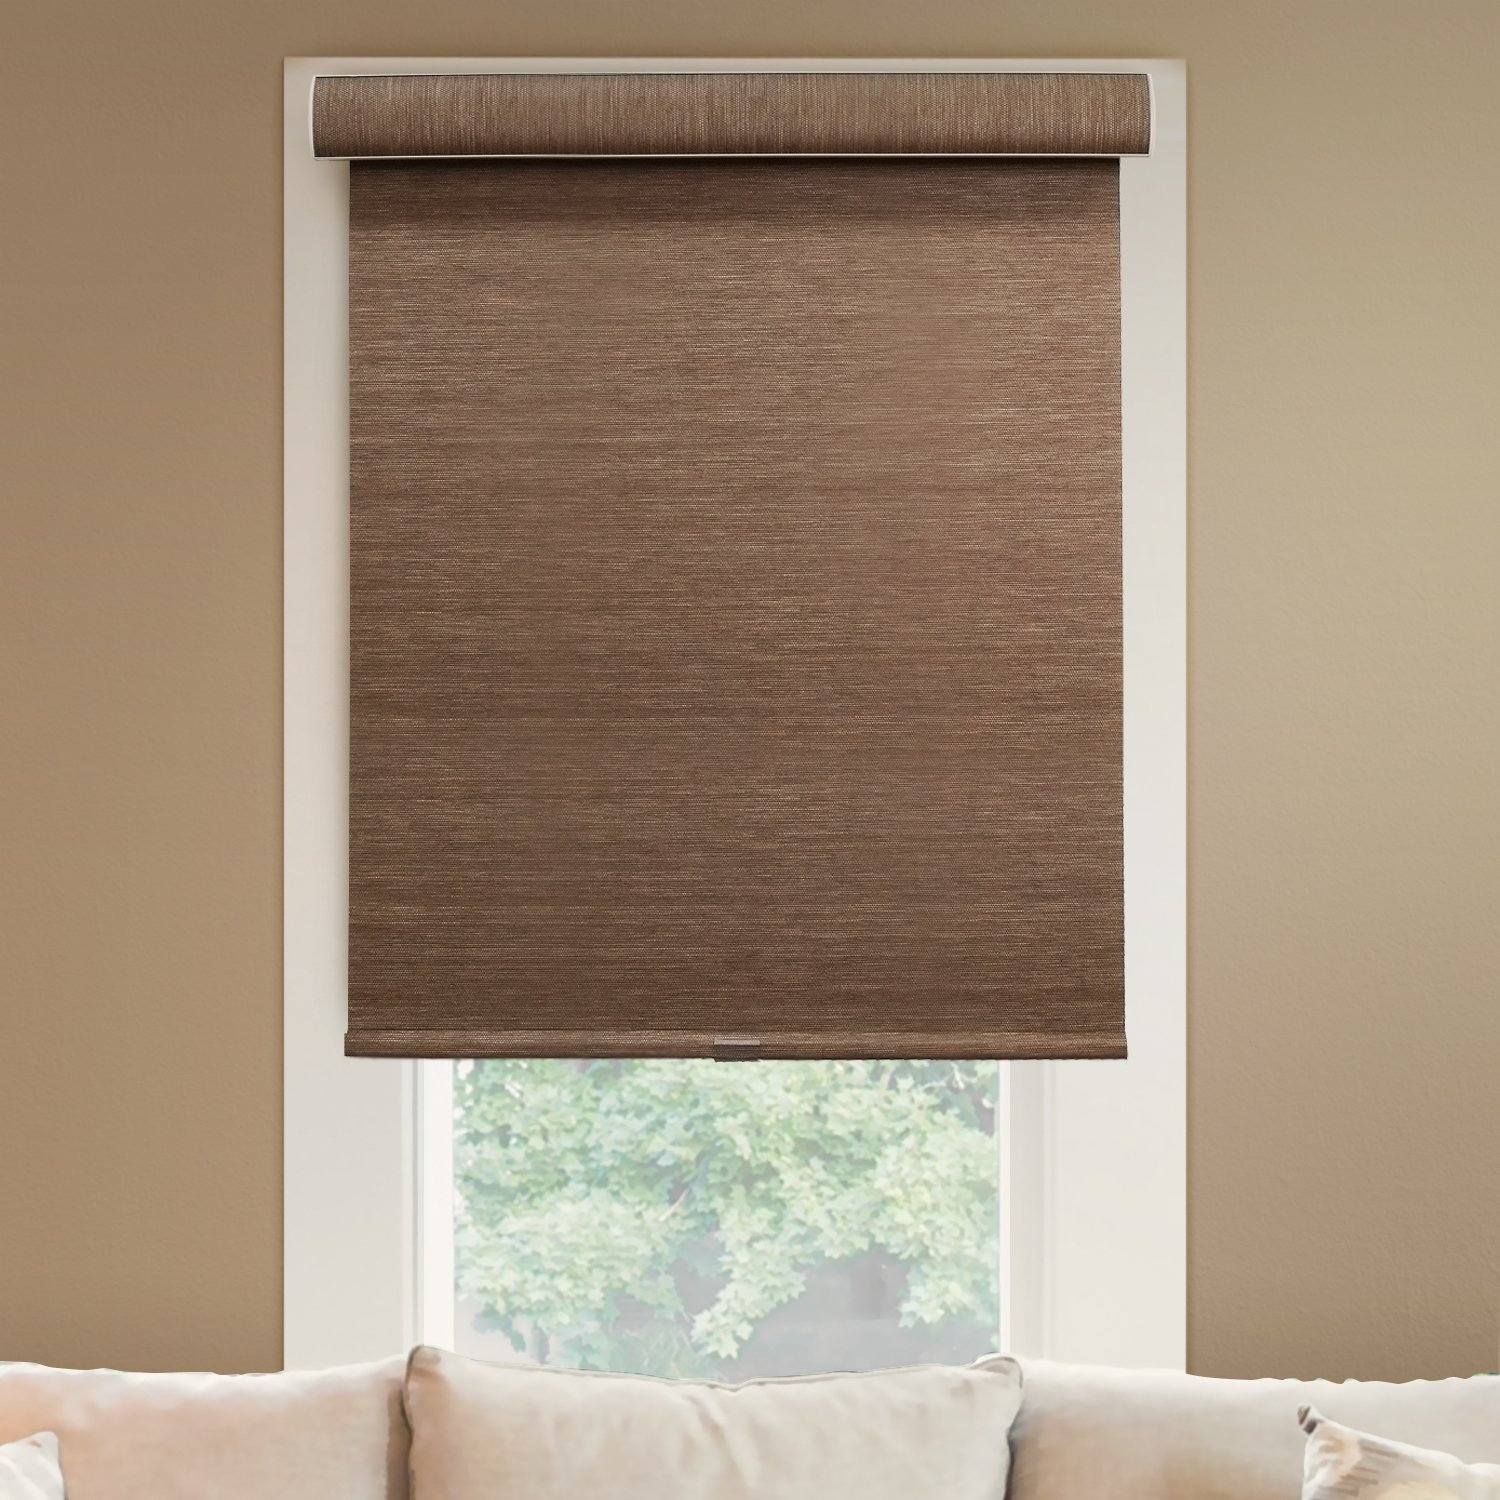 CHICOLOGY Deluxe Free-Stop Cordless Roller Shades No Tug Privacy Window Blind, 45'' W X 72'' H, Felton Truffle (Privacy and Natural Woven)